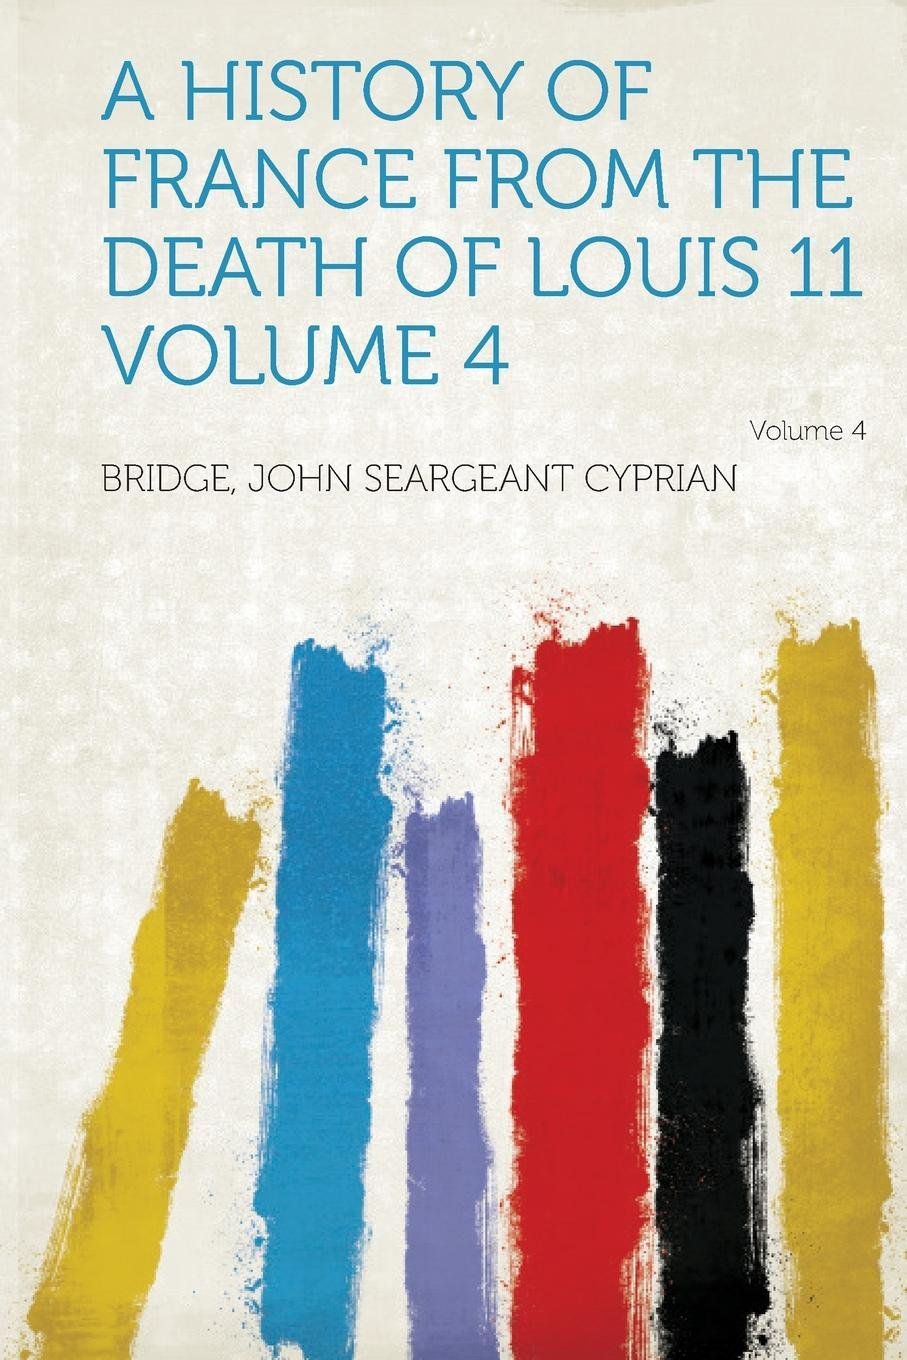 Download A History of France from the Death of Louis 11 Volume 4 PDF